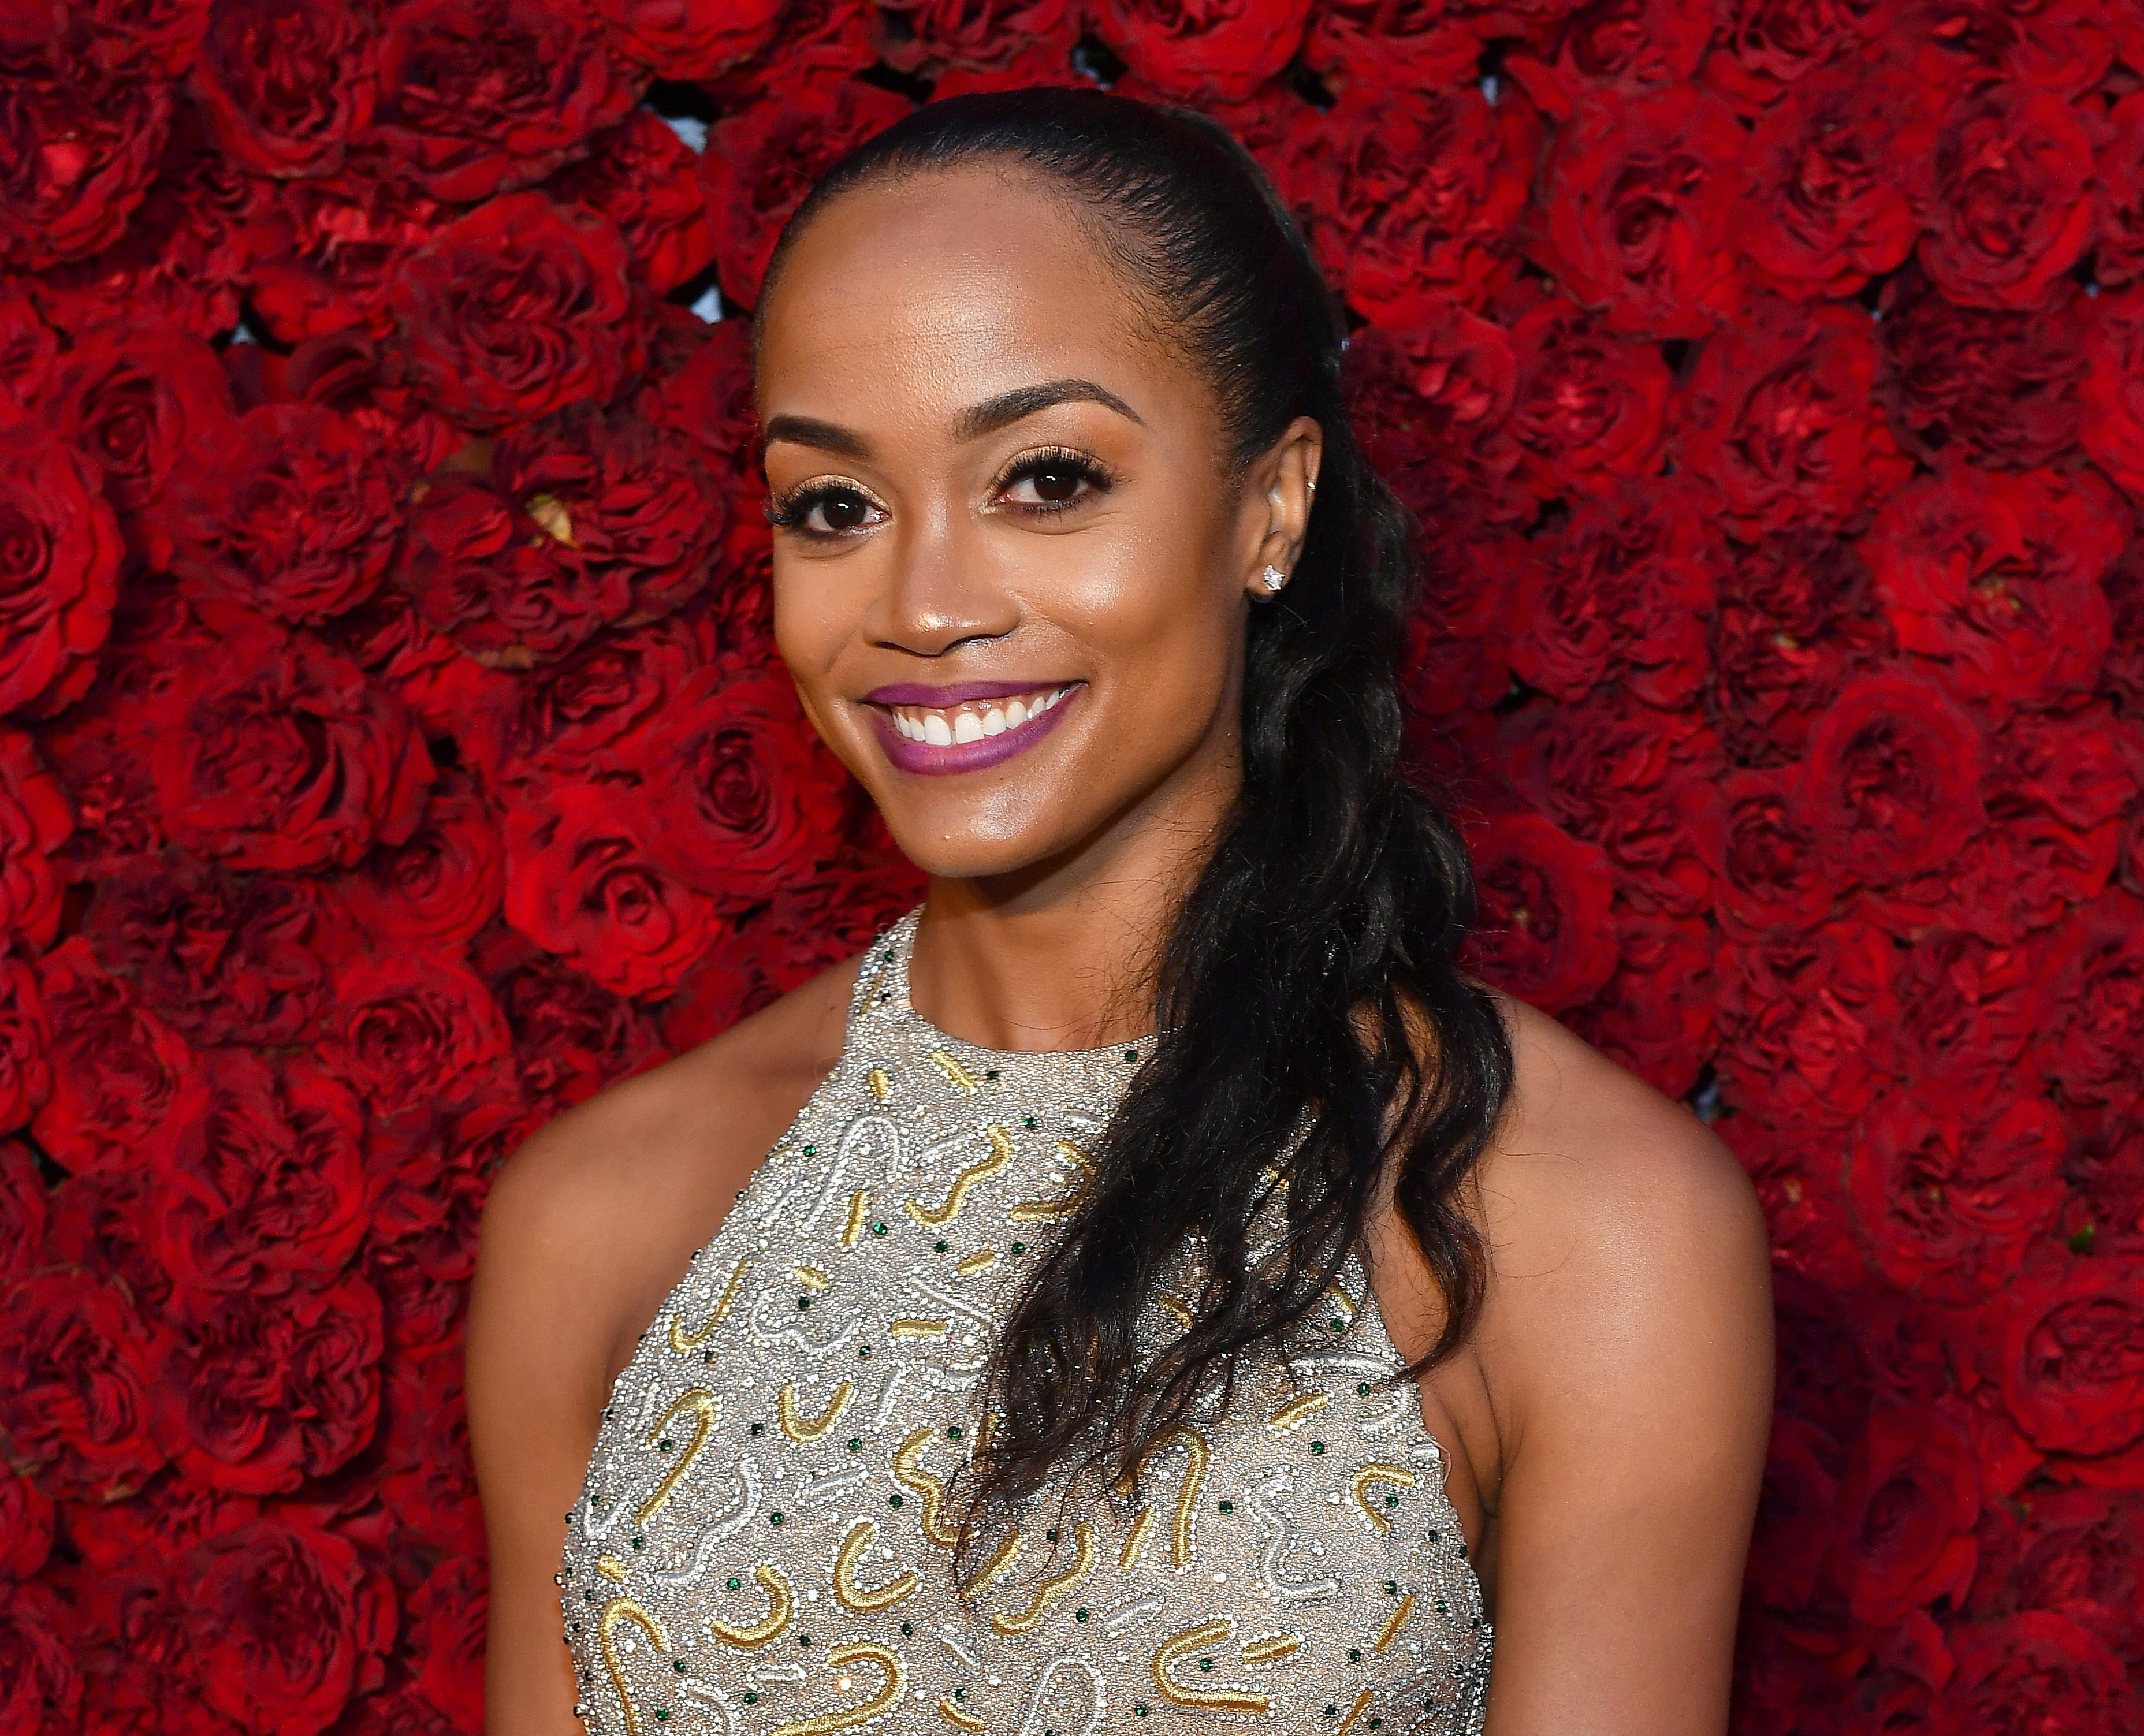 Former 'Bachelor' contestant Rachel Lindsay called out host Chris Harrison for defending a controversial media post by another contestant.